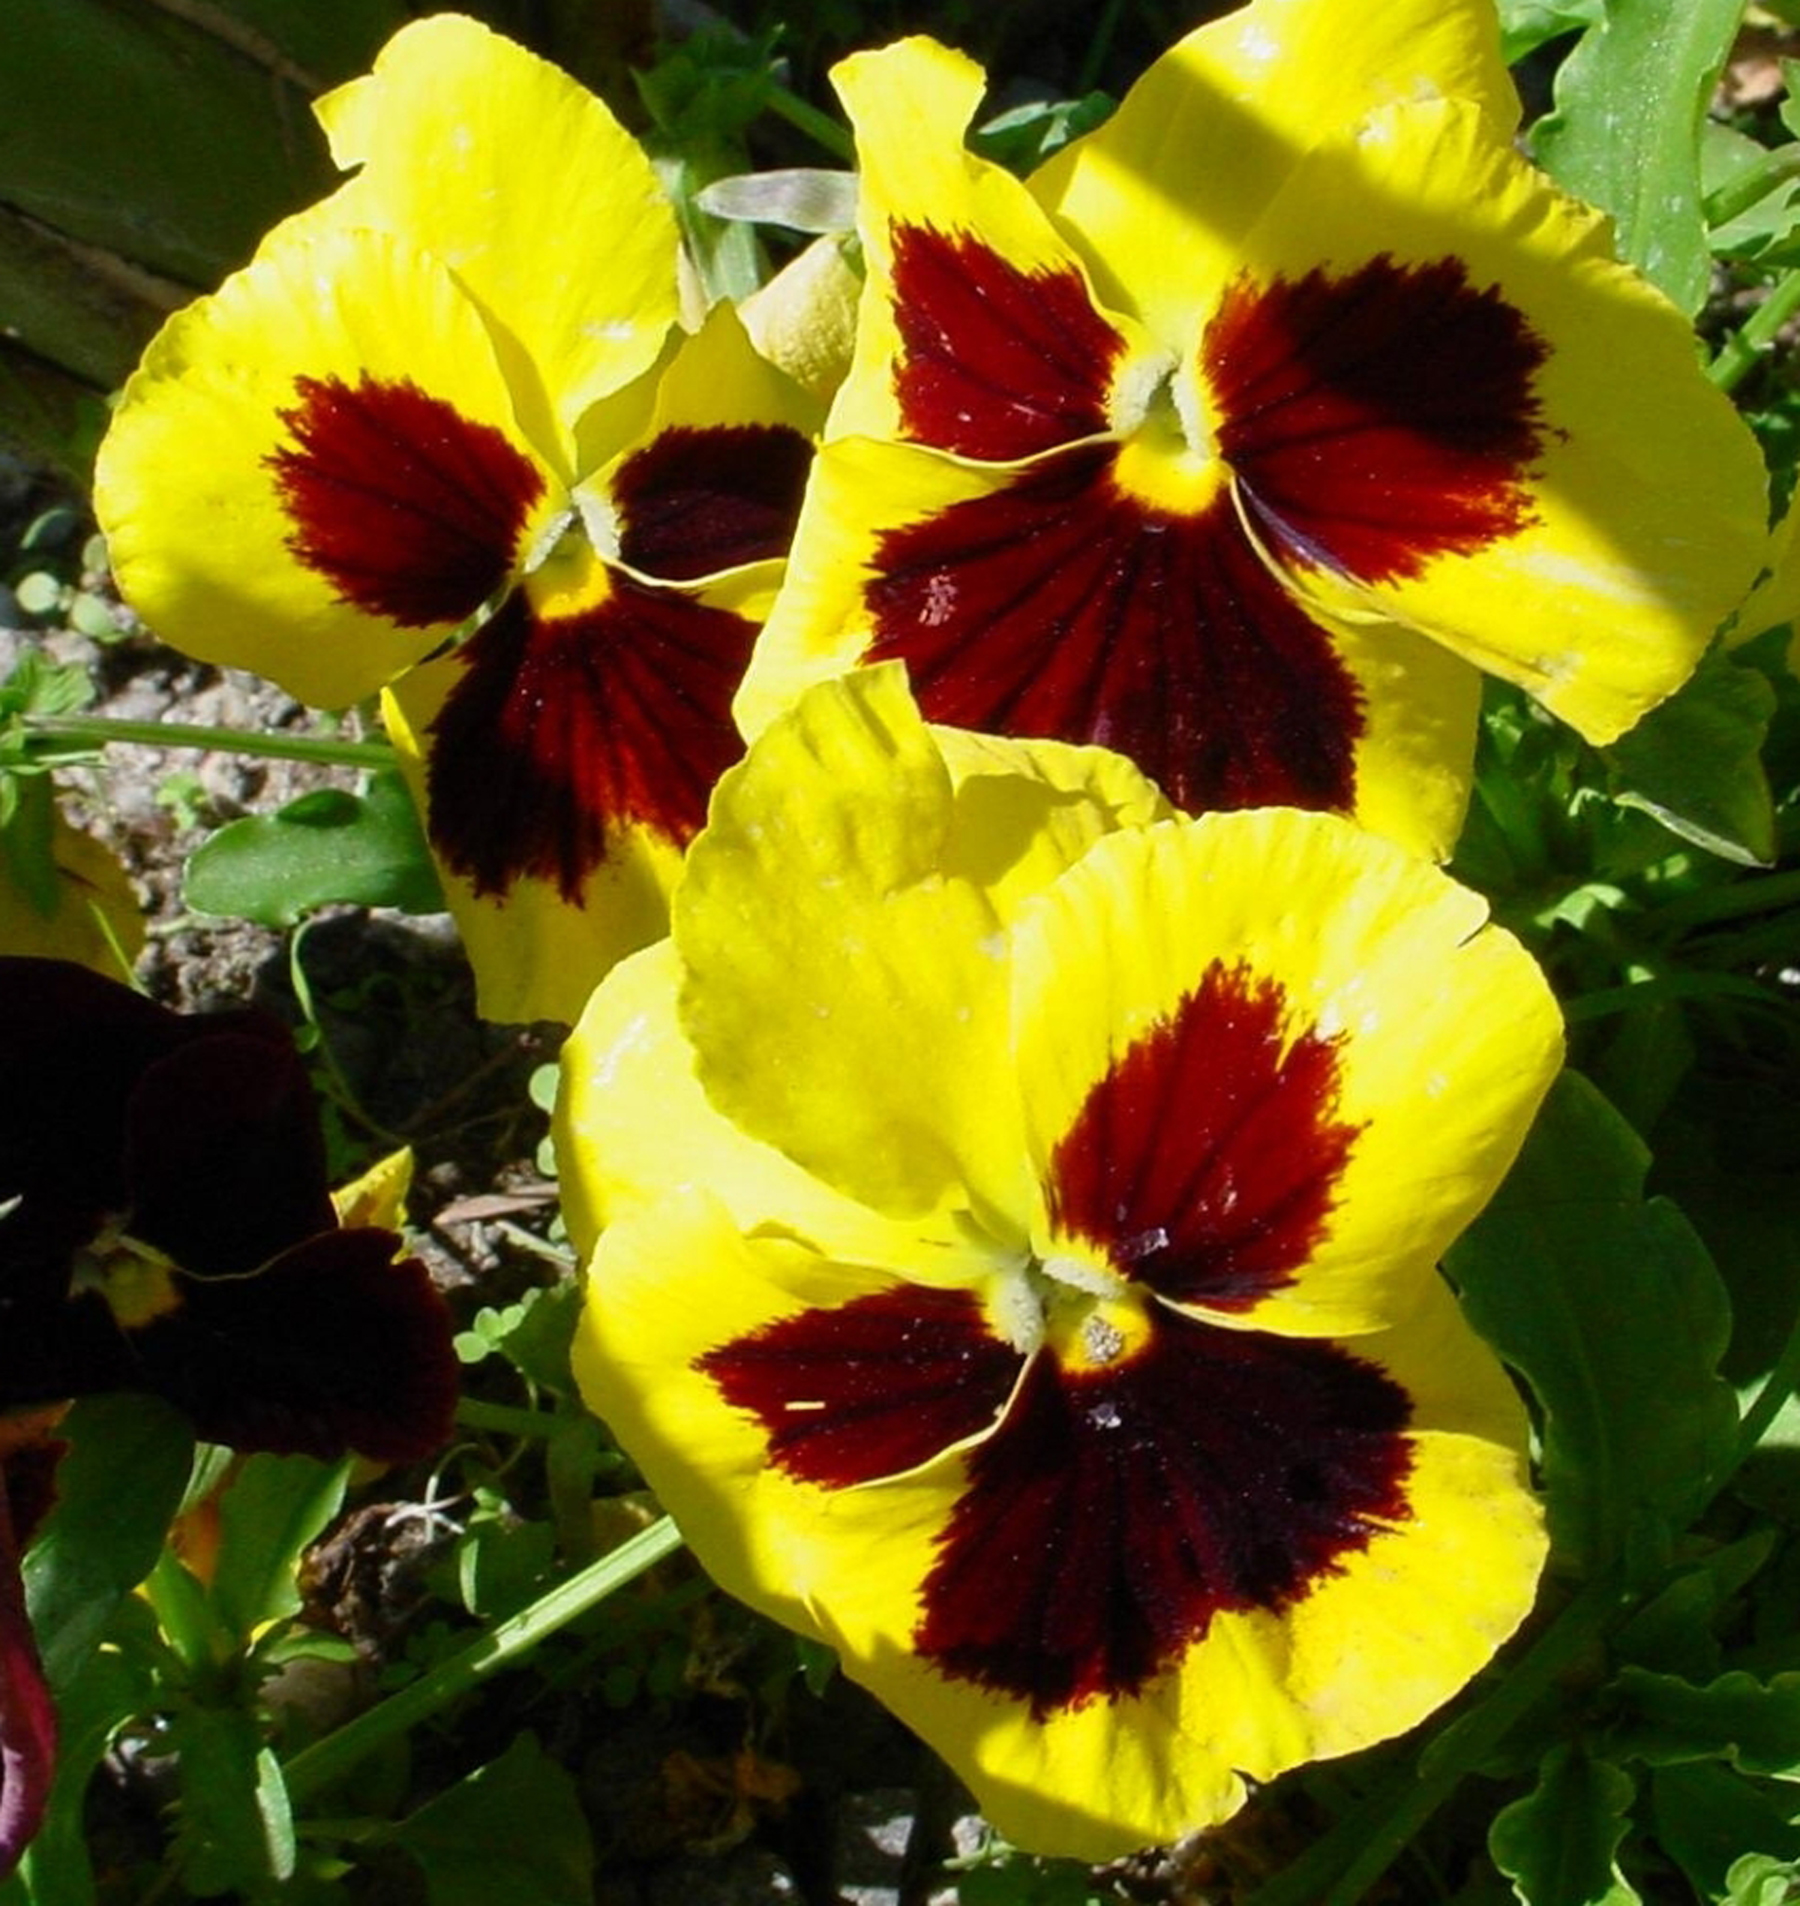 These yellow-faced pansies are classic winter flowers, ready to plant in Georgia between middle September and the first of November, depending on the planting zone.